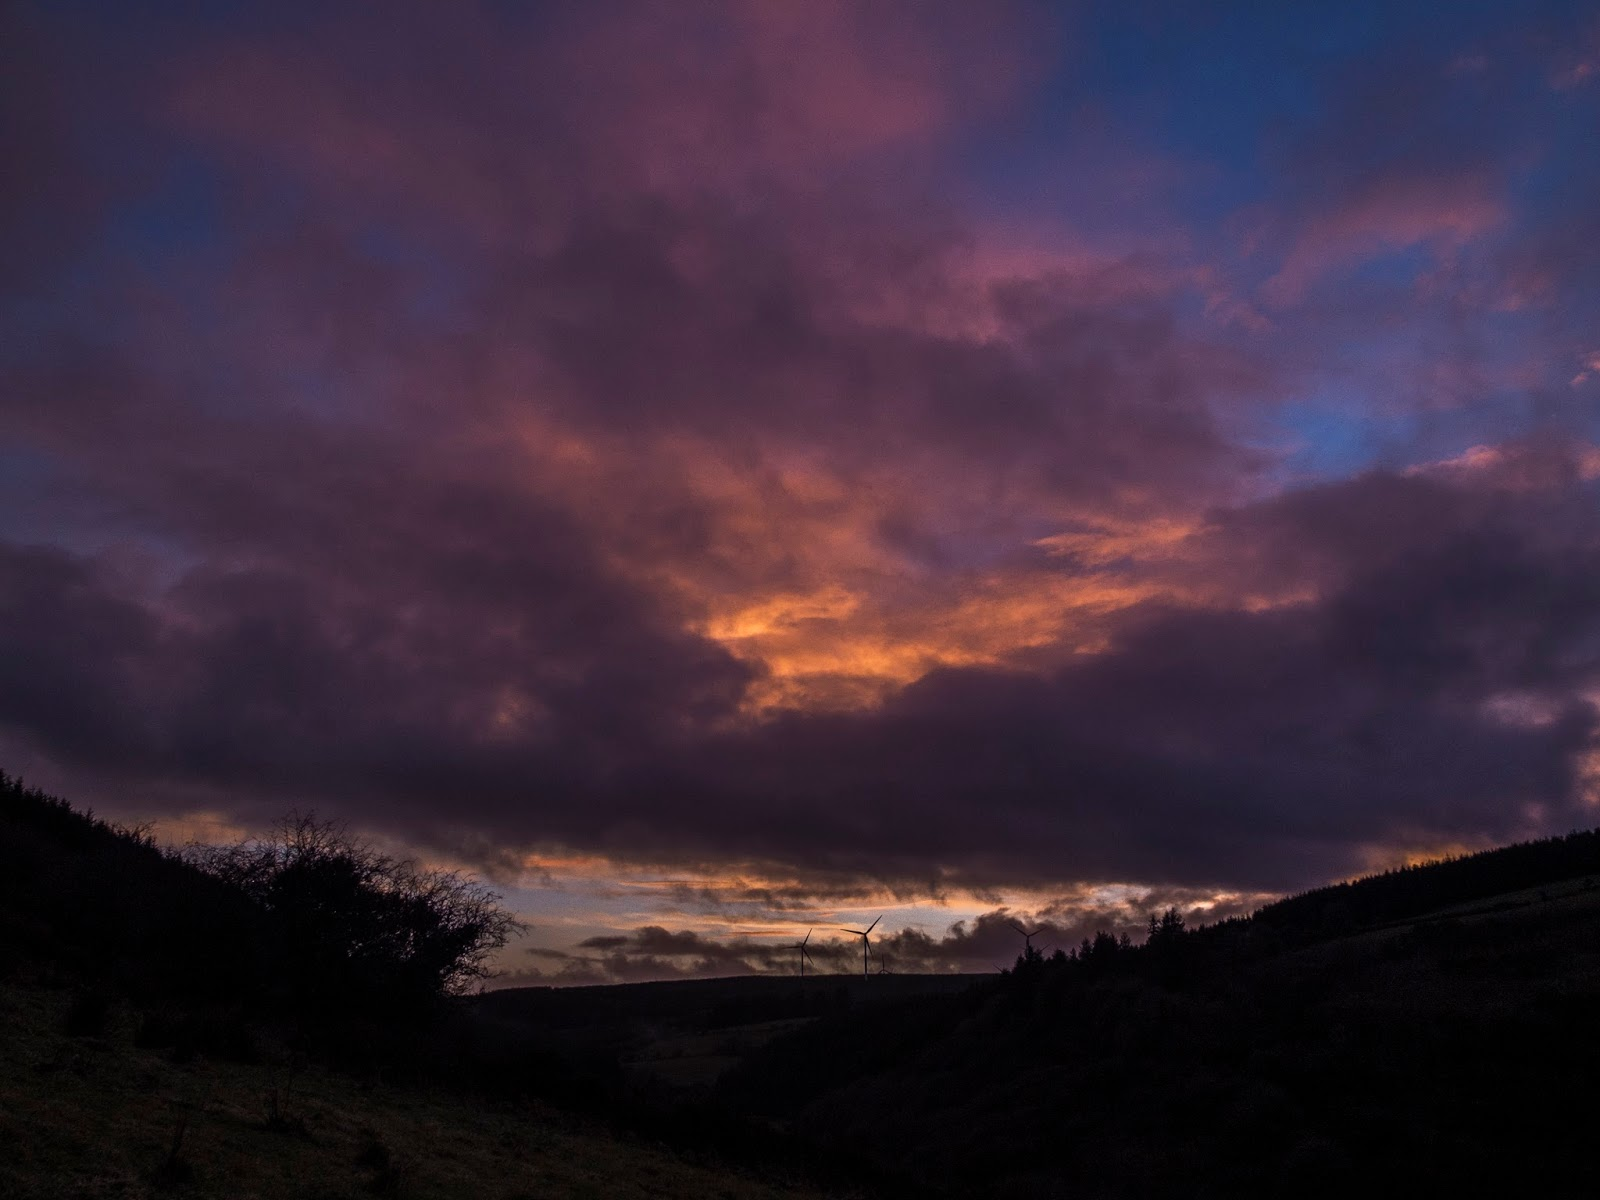 Sun setting over a valley in North Cork, Ireland with dramatic purple and pink clouds.